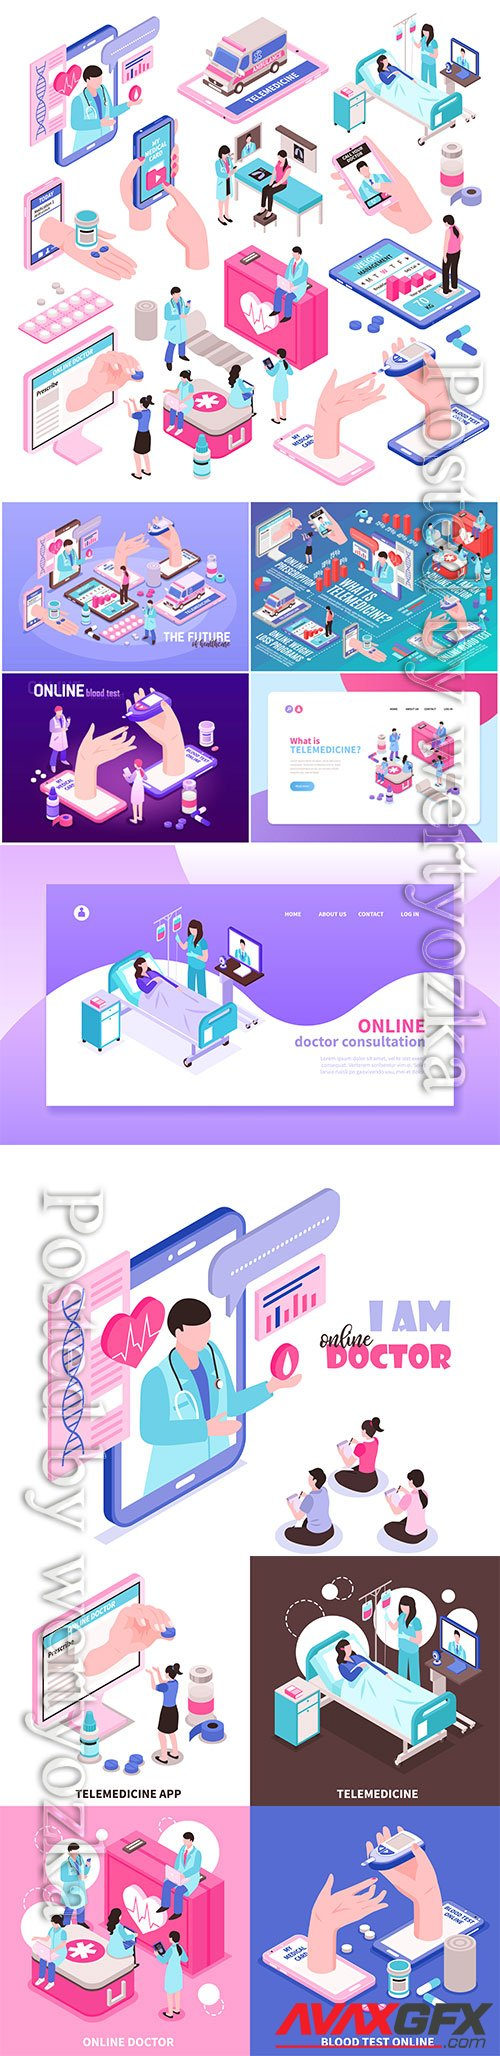 Online medicine and digital health isometric elements vector set